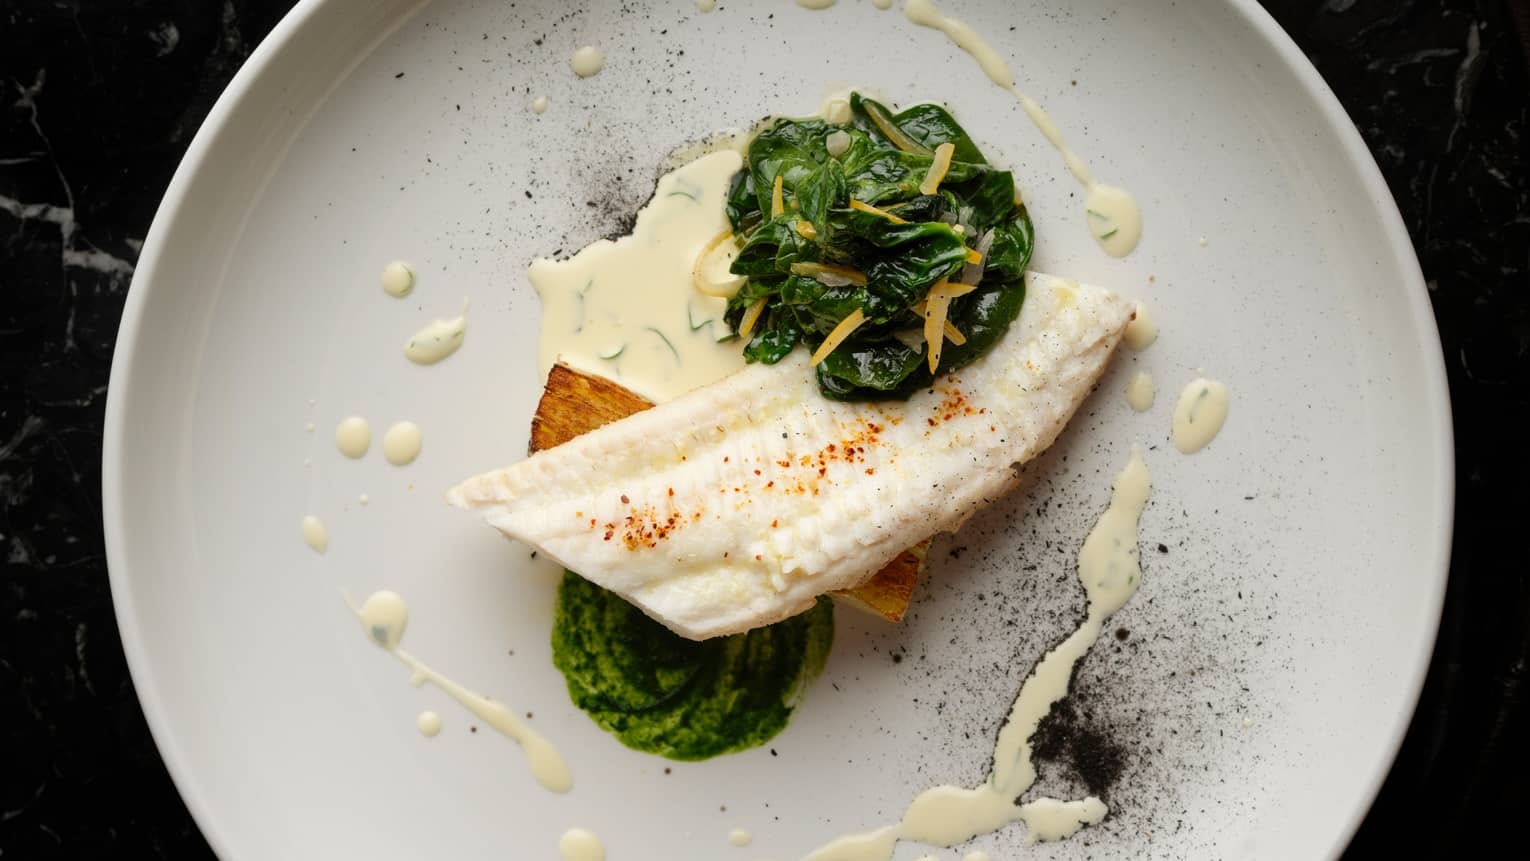 Dover Sole fish fillet with creamed greens, hollandaise sauce on plate